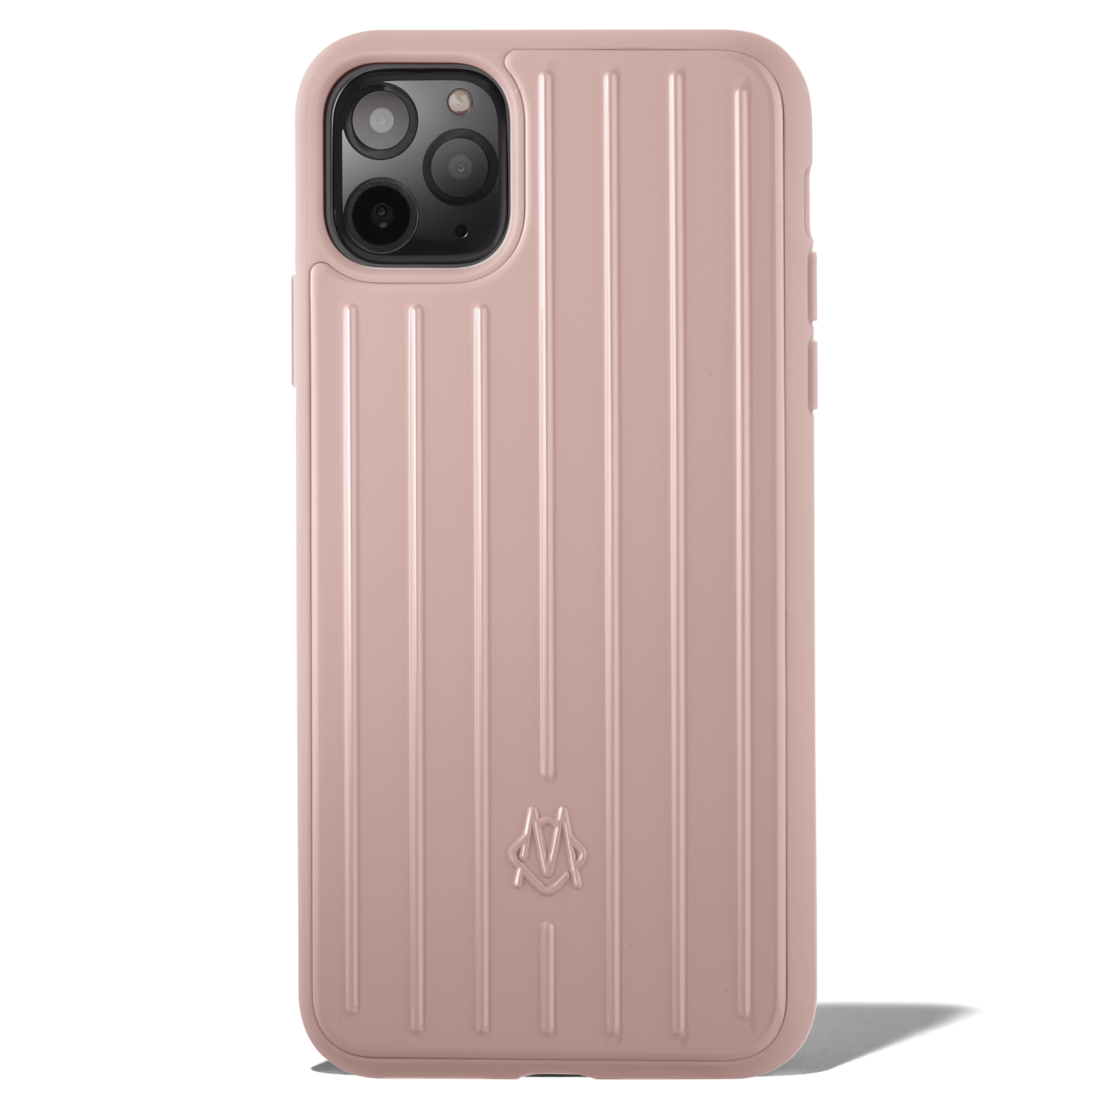 Polycarbonate Desert Rose Pink Groove Case for iPhone 11 Pro Max